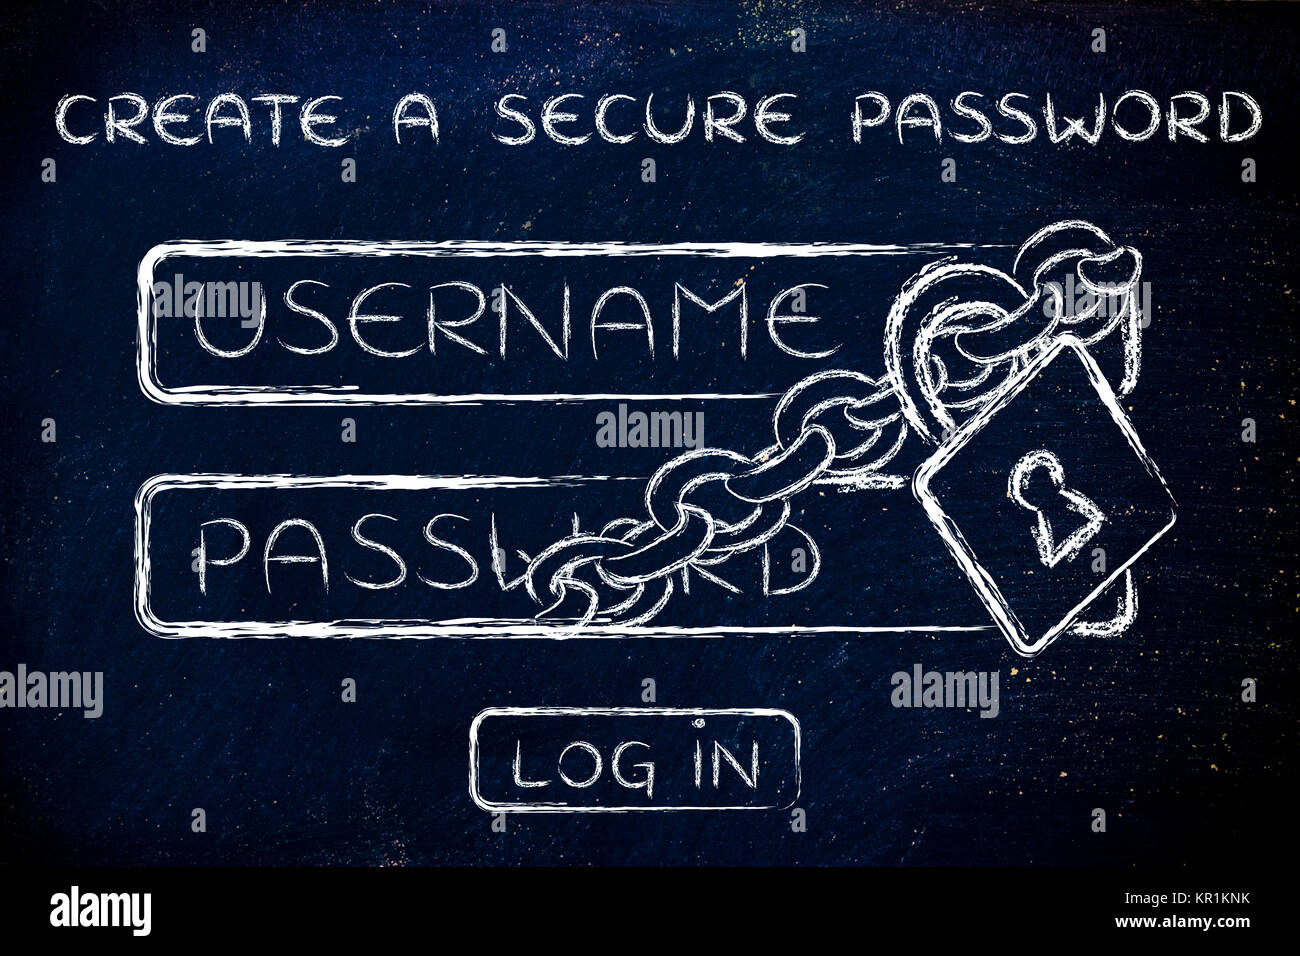 create a secure password, login with lock and chain - Stock Image